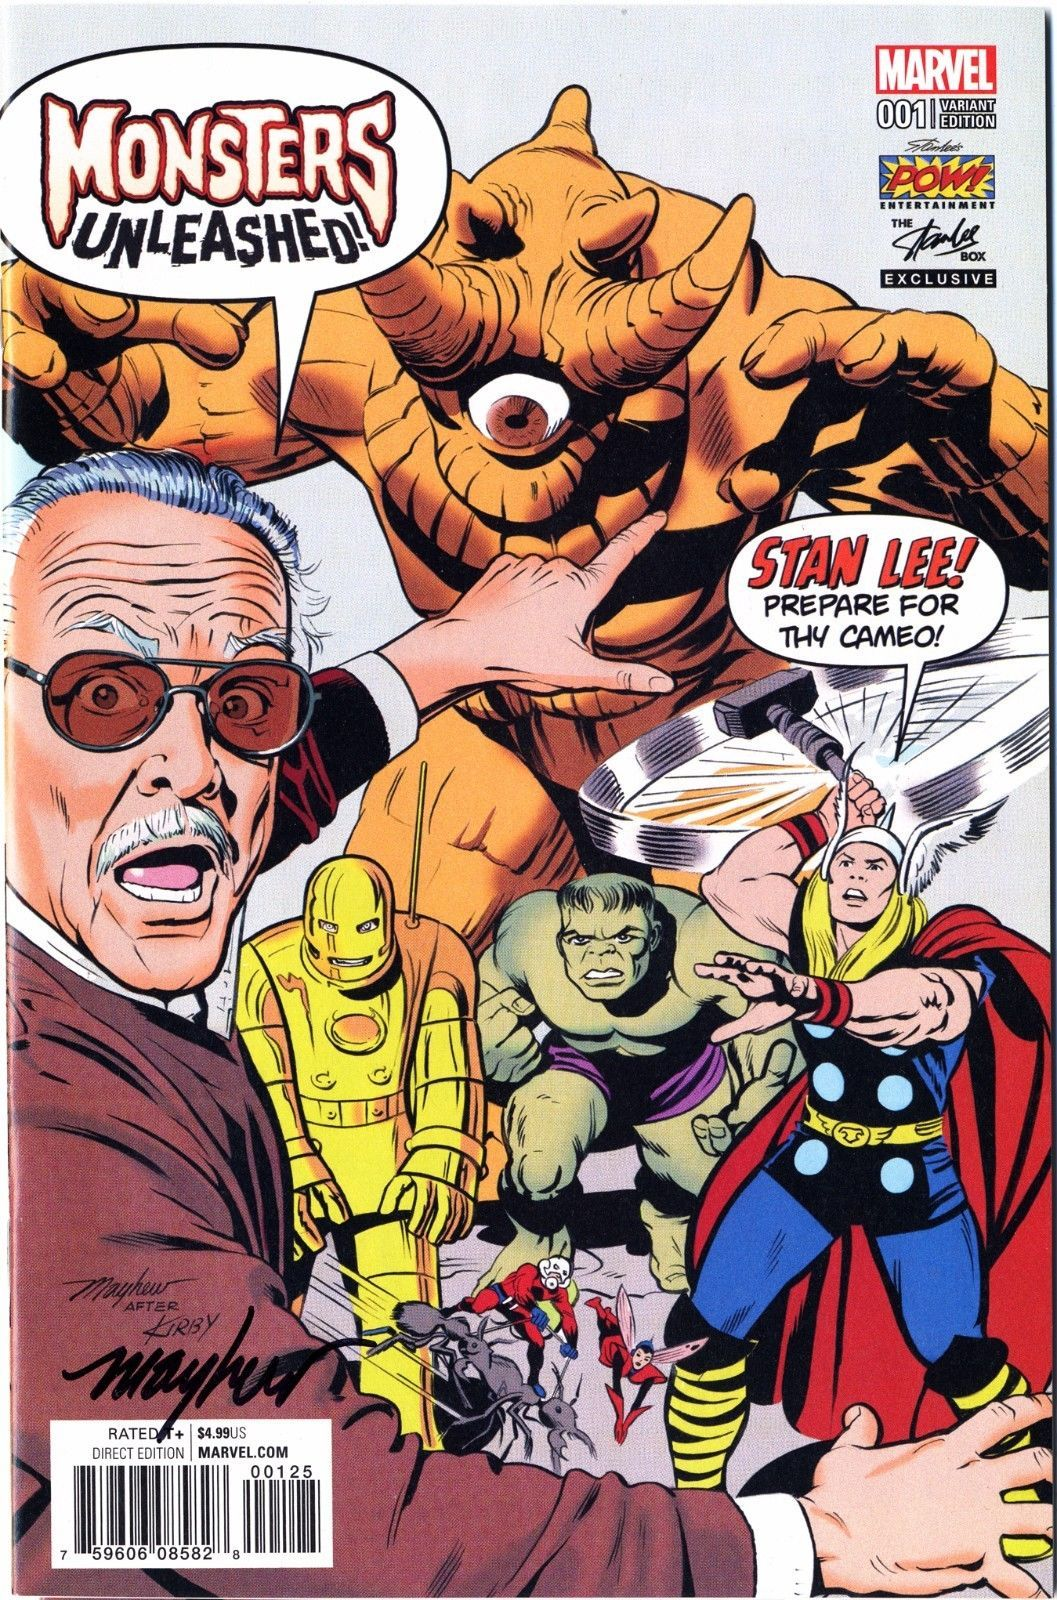 Stan Lee Tribute To Run On Marvel Comics Covers In